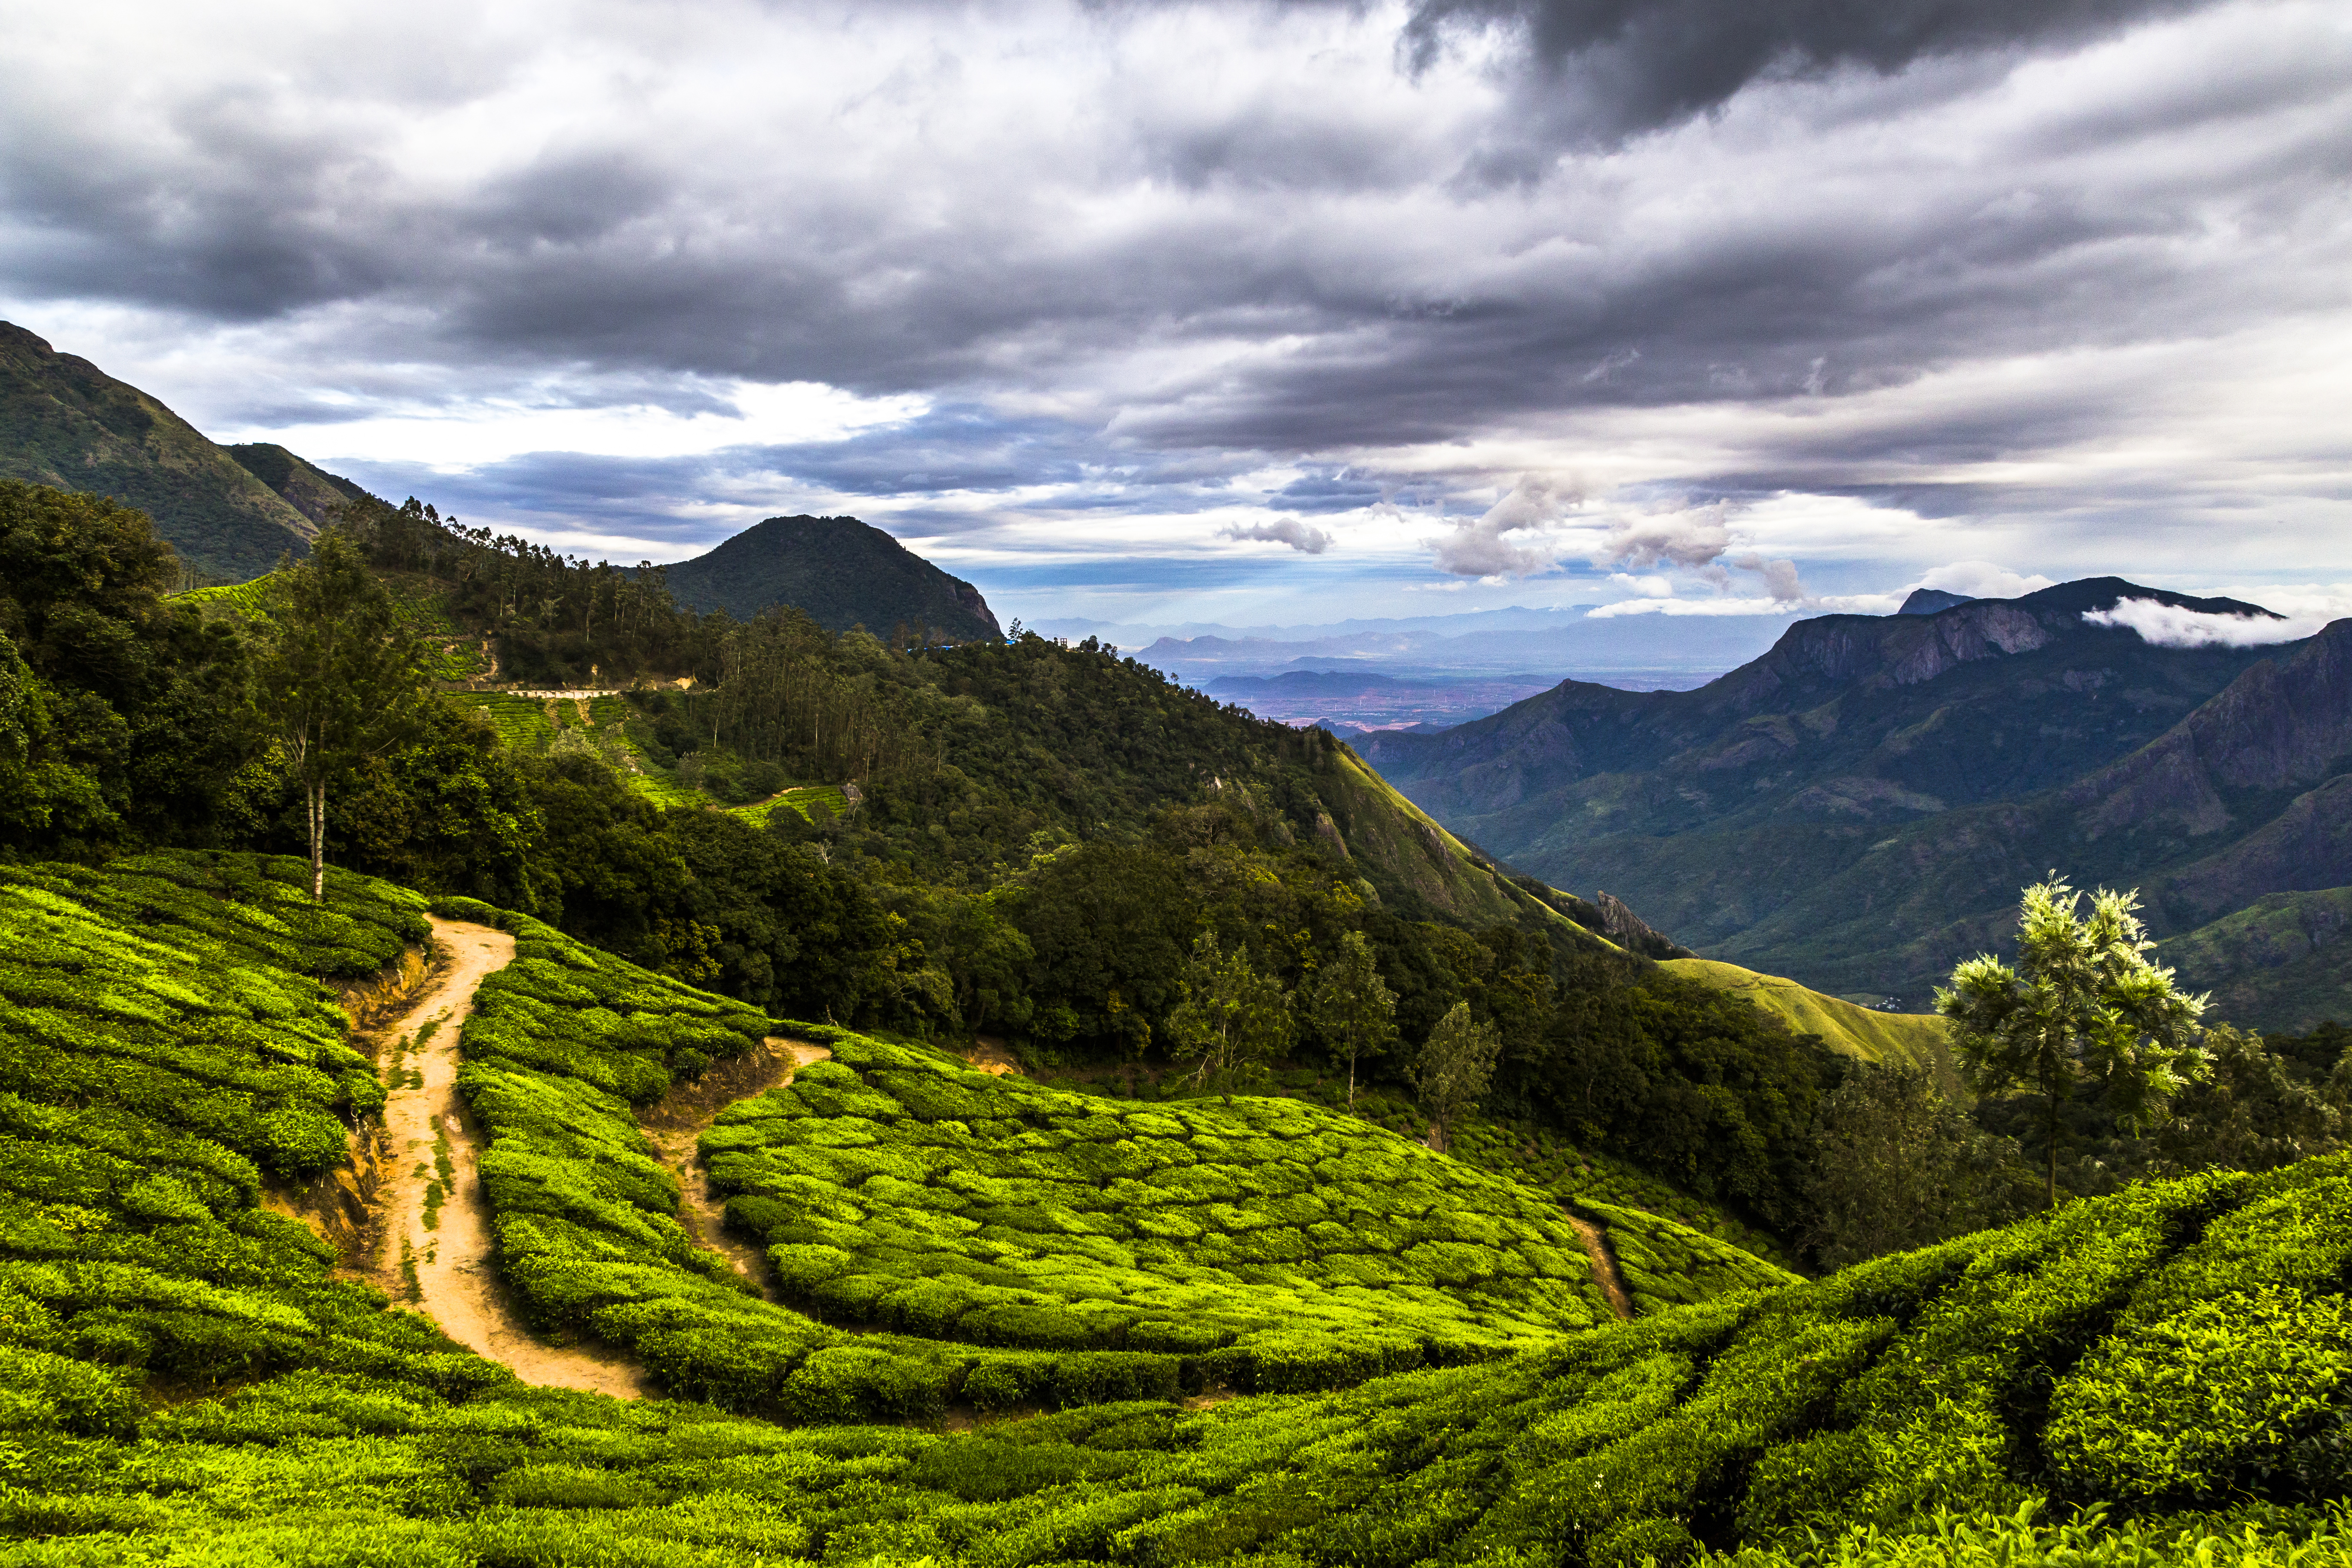 An international team of researchers showed that fragmentation weakens the impact of some 'natural enemies' that help maintain diversity in a tropical system. The study was conducted in fragmented tropical forest in India, in an area that now holds many tea plantations. (Getty Images)